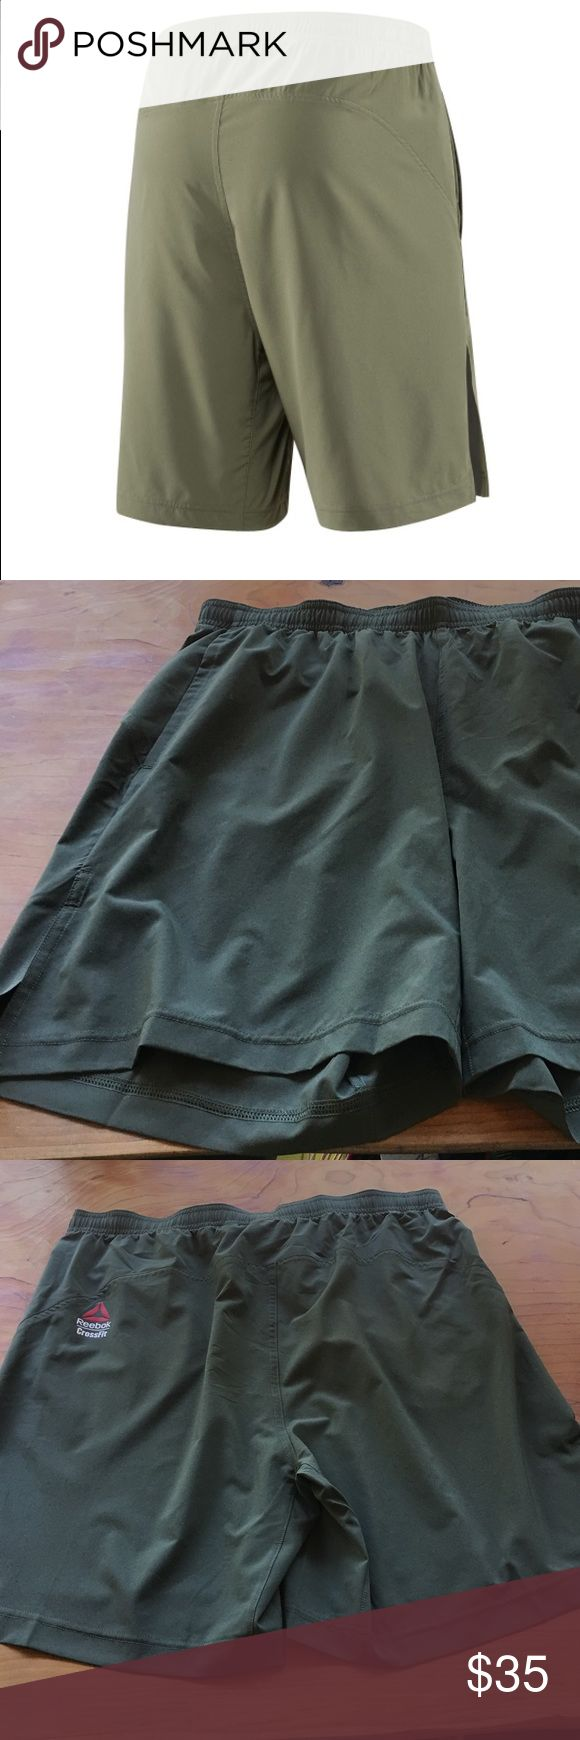 Reebok CrossFit Austin 2 Short in Army Green Super lightweight workout short. Size large. Side pockets and slits on the side or easy movability. No tags but brand new and never worn. Reebok Shorts Athletic